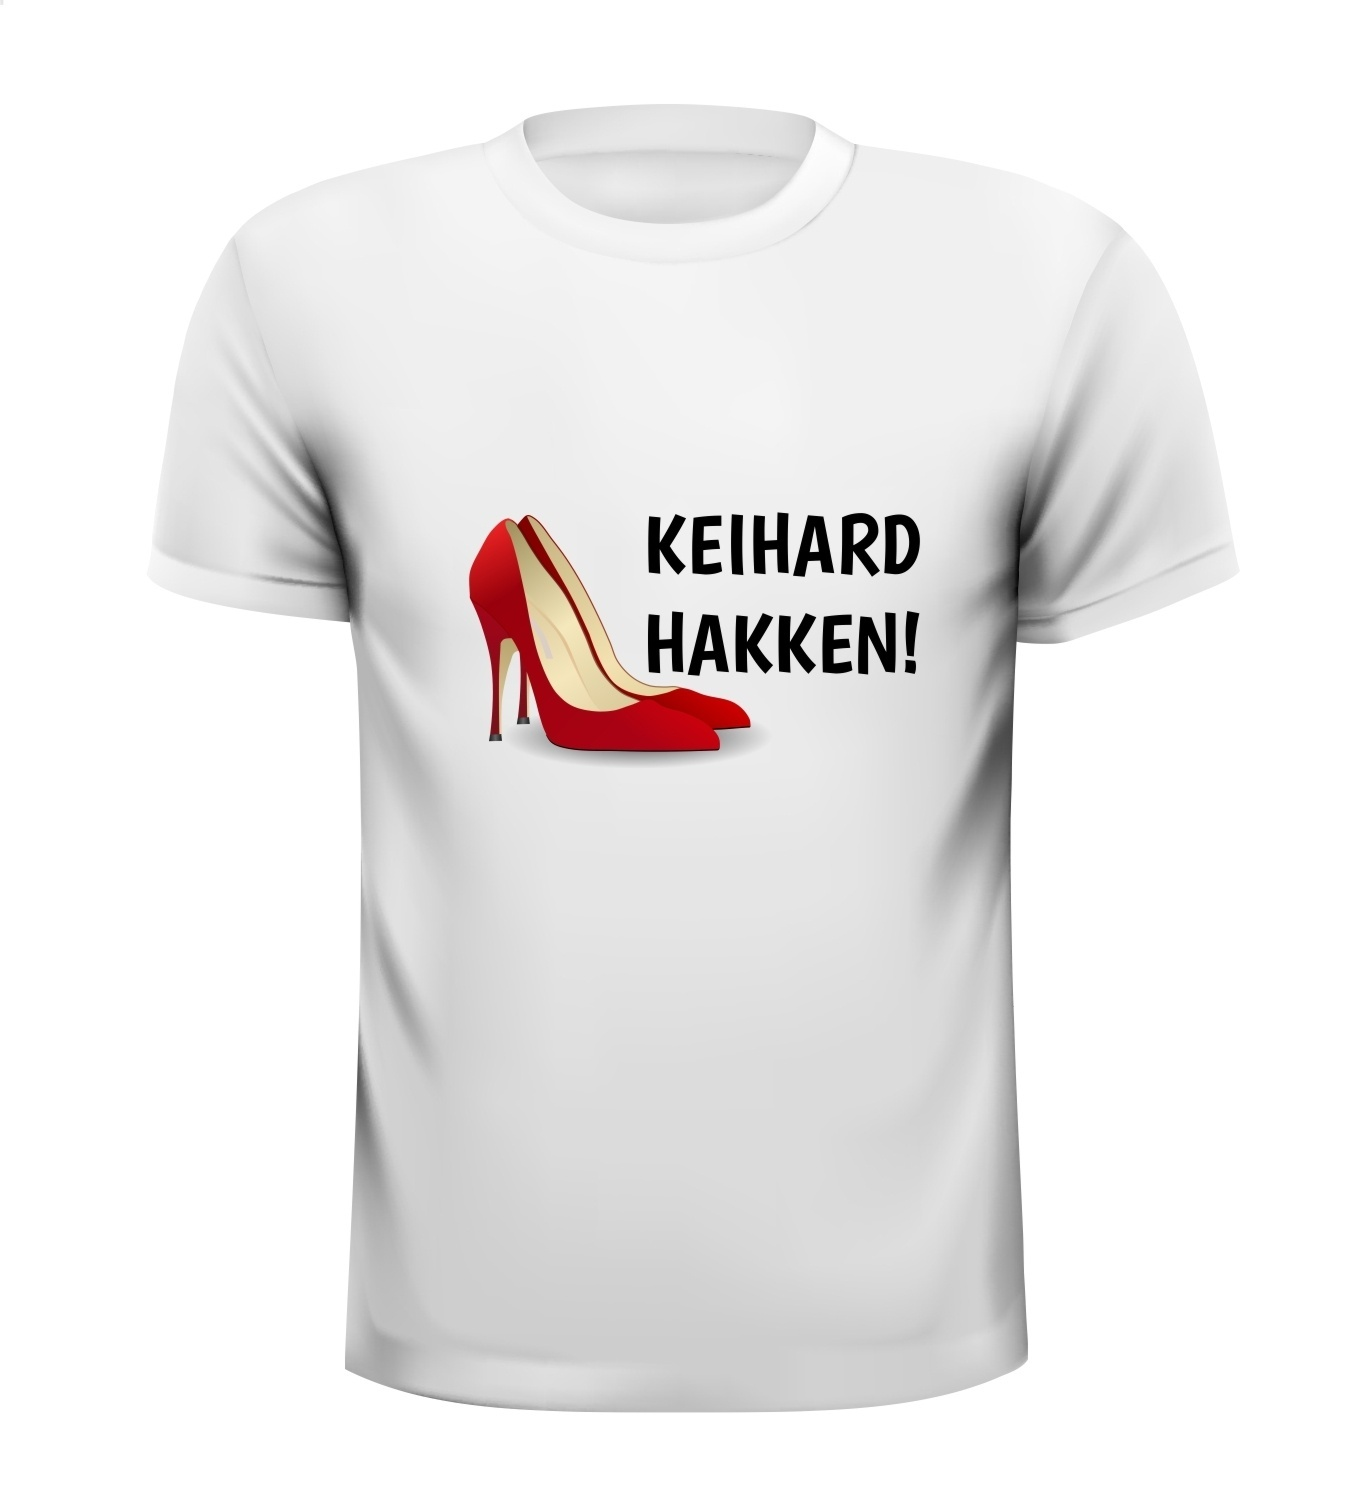 T-shirt Keihard hakken! housemuziek 90's foute party